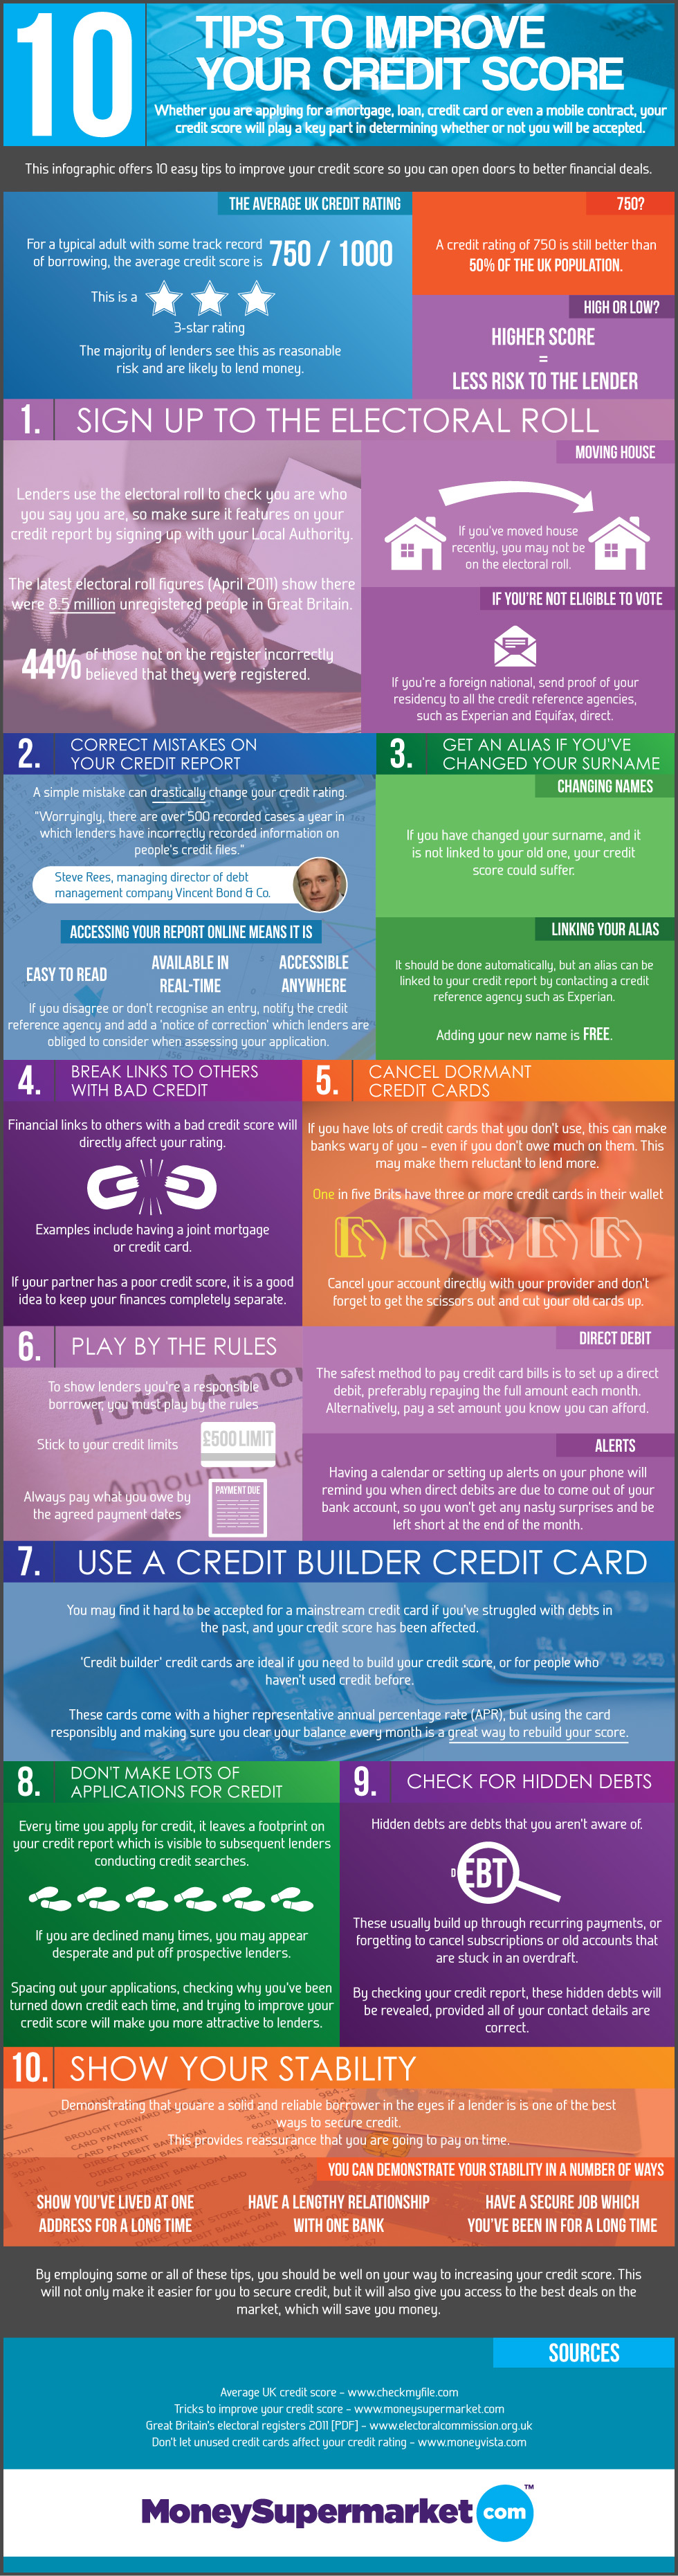 10-tips-to-improve-your-credit-card-score